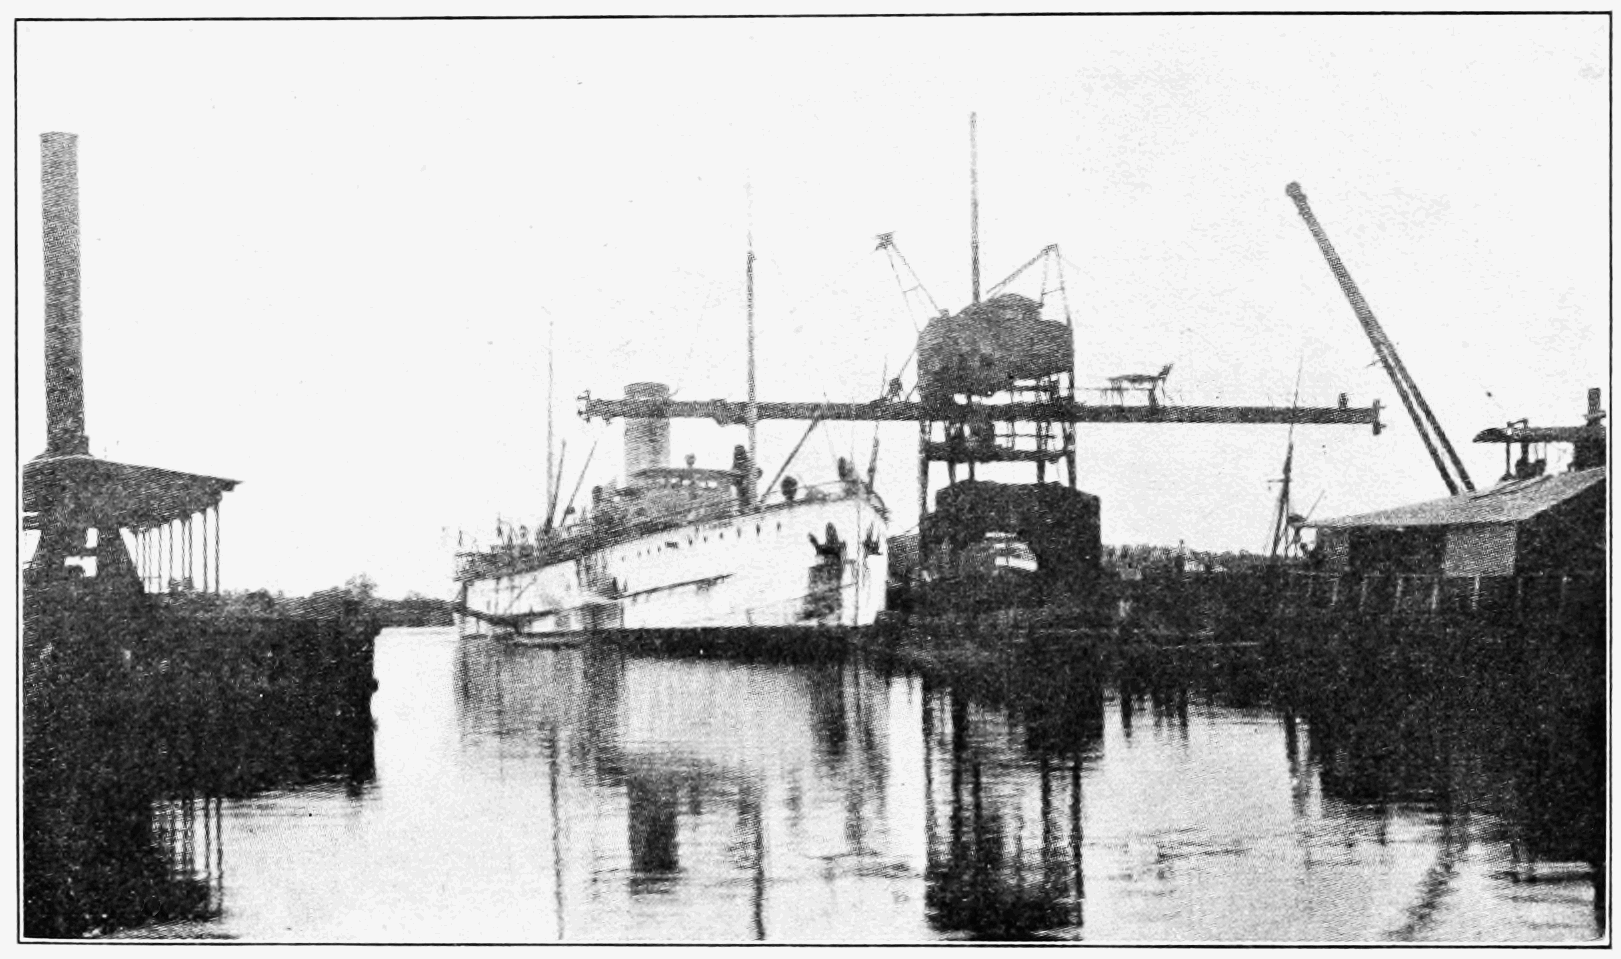 PSM V74 D424 Seagoing suction dredge ancon at cristobel.png